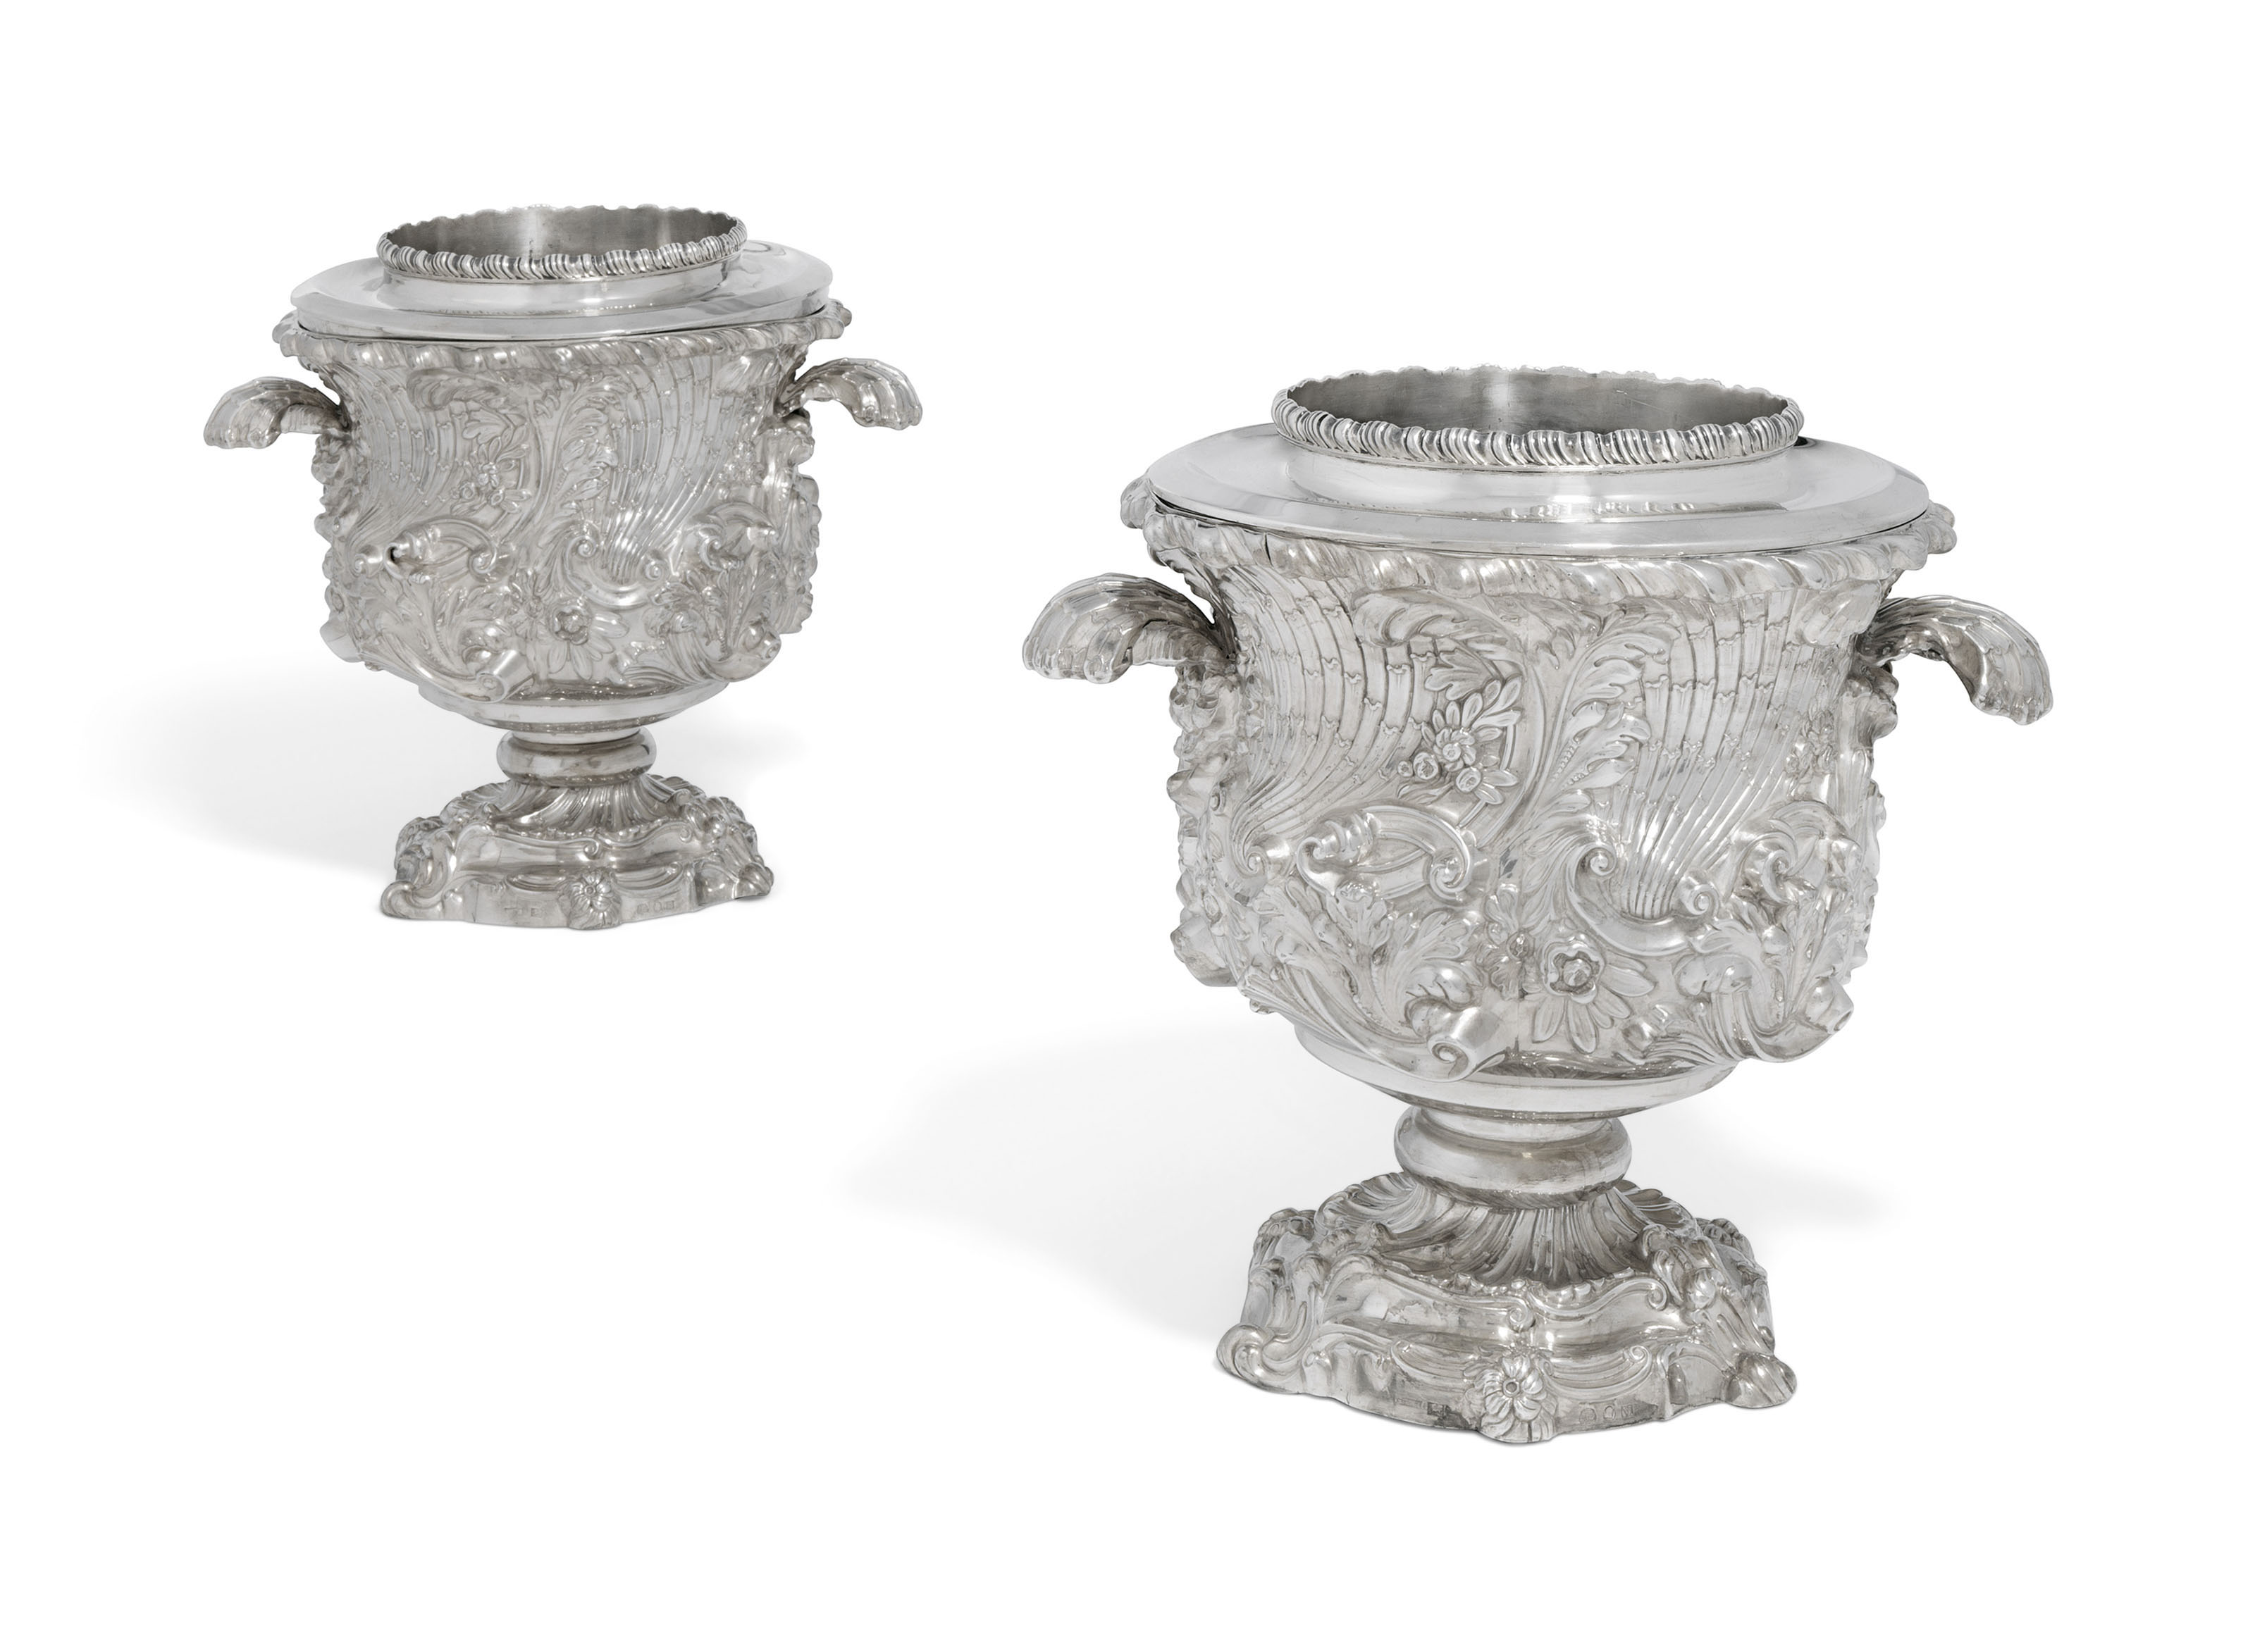 A PAIR OF GEORGE III SILVER WINE-COOLERS, COLLARS AND LINERS